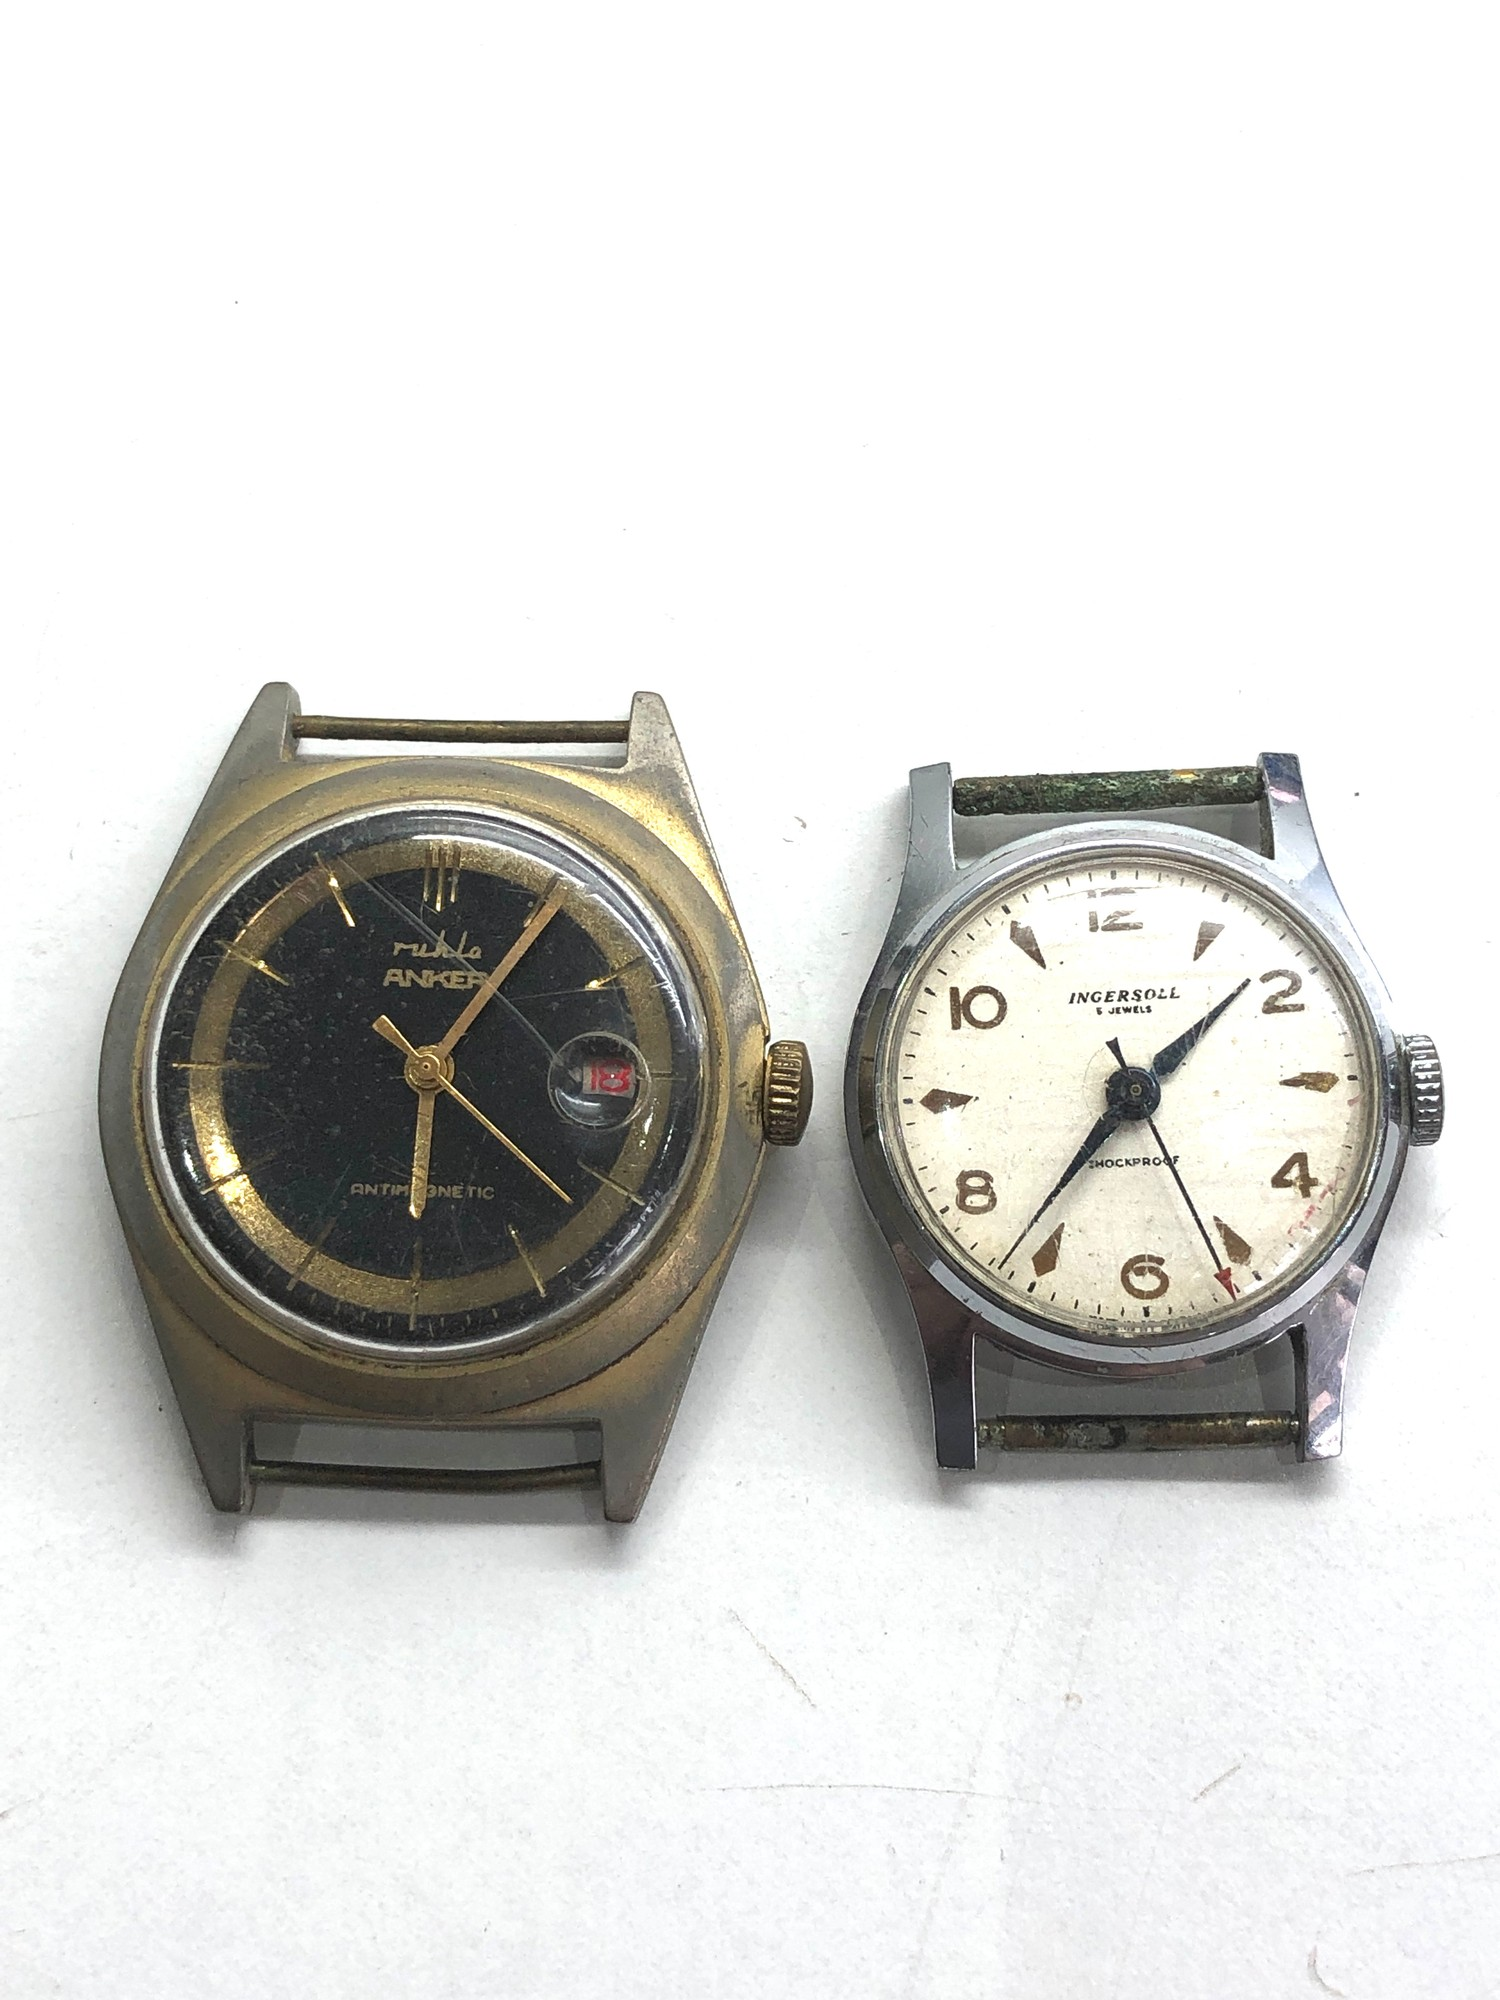 Selection of 4 vintage gents wristwatches includes ingersoll timex ruhla and michael roberts - Image 4 of 5